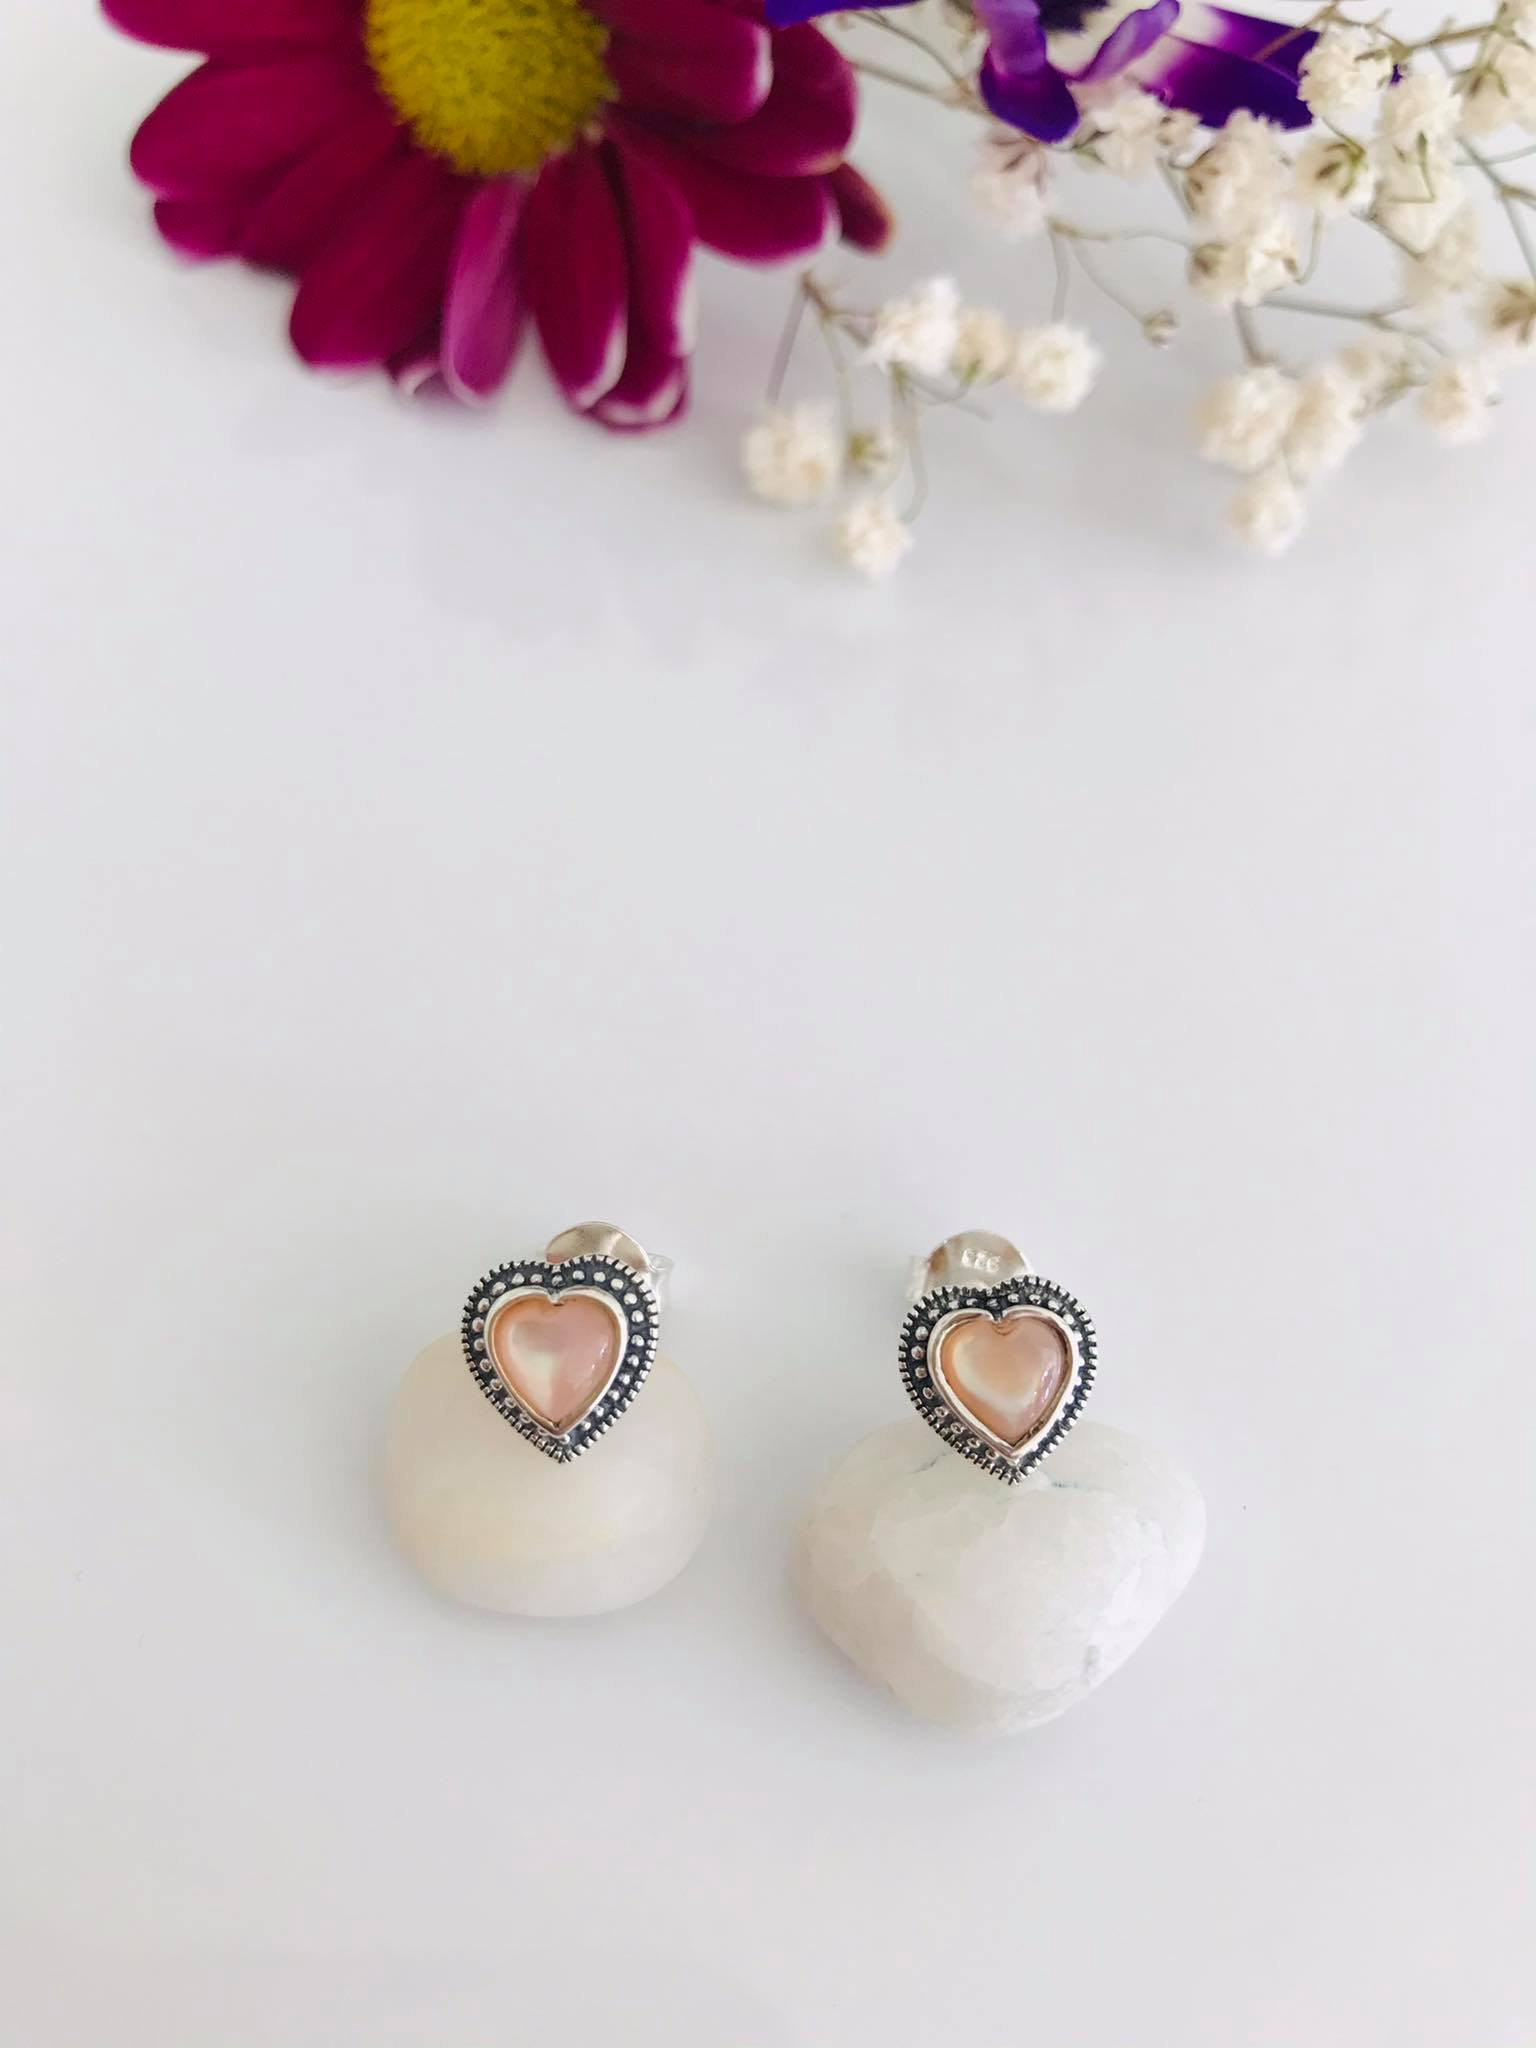 Pink Mother of Pearl and Marcasite Silver Earrings Image